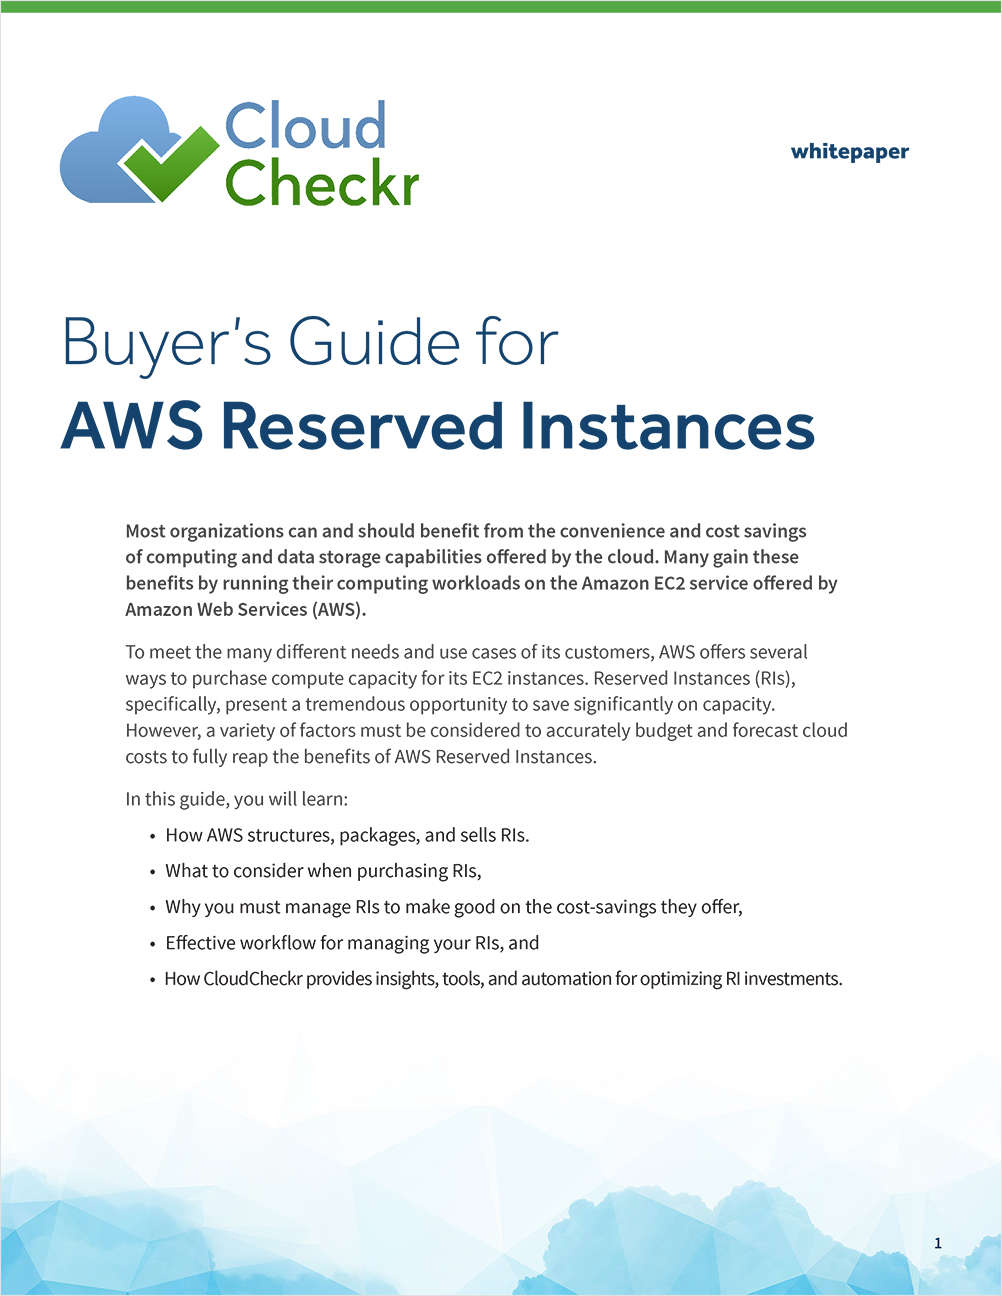 Buyer's Guide for AWS Reserved Instances